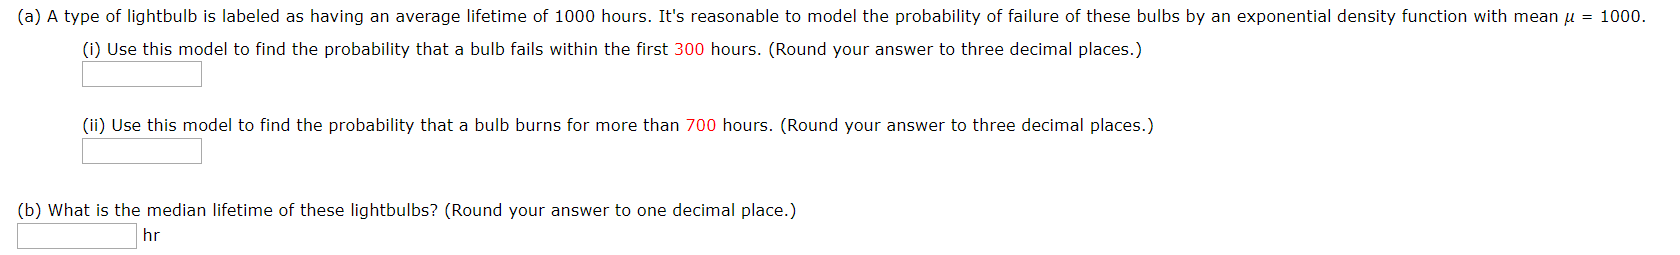 (a) A type of lightbulb is labeled as having an average lifetime of 1000 hours. It's reasonable to model the probability of failure of these bulbs by an exponential density function with mean u 1000 (i) Use this model to find the probability that a bulb fails within the first 300 hours. (Round your answer to three decimal places.) (ii) Use this model to find the probability that a bulb burns for more than 700 hours. (Round your answer to three decimal places.) (b) What is the median lifetime of these lightbulbs? (Round your answer to one decimal place.) hr